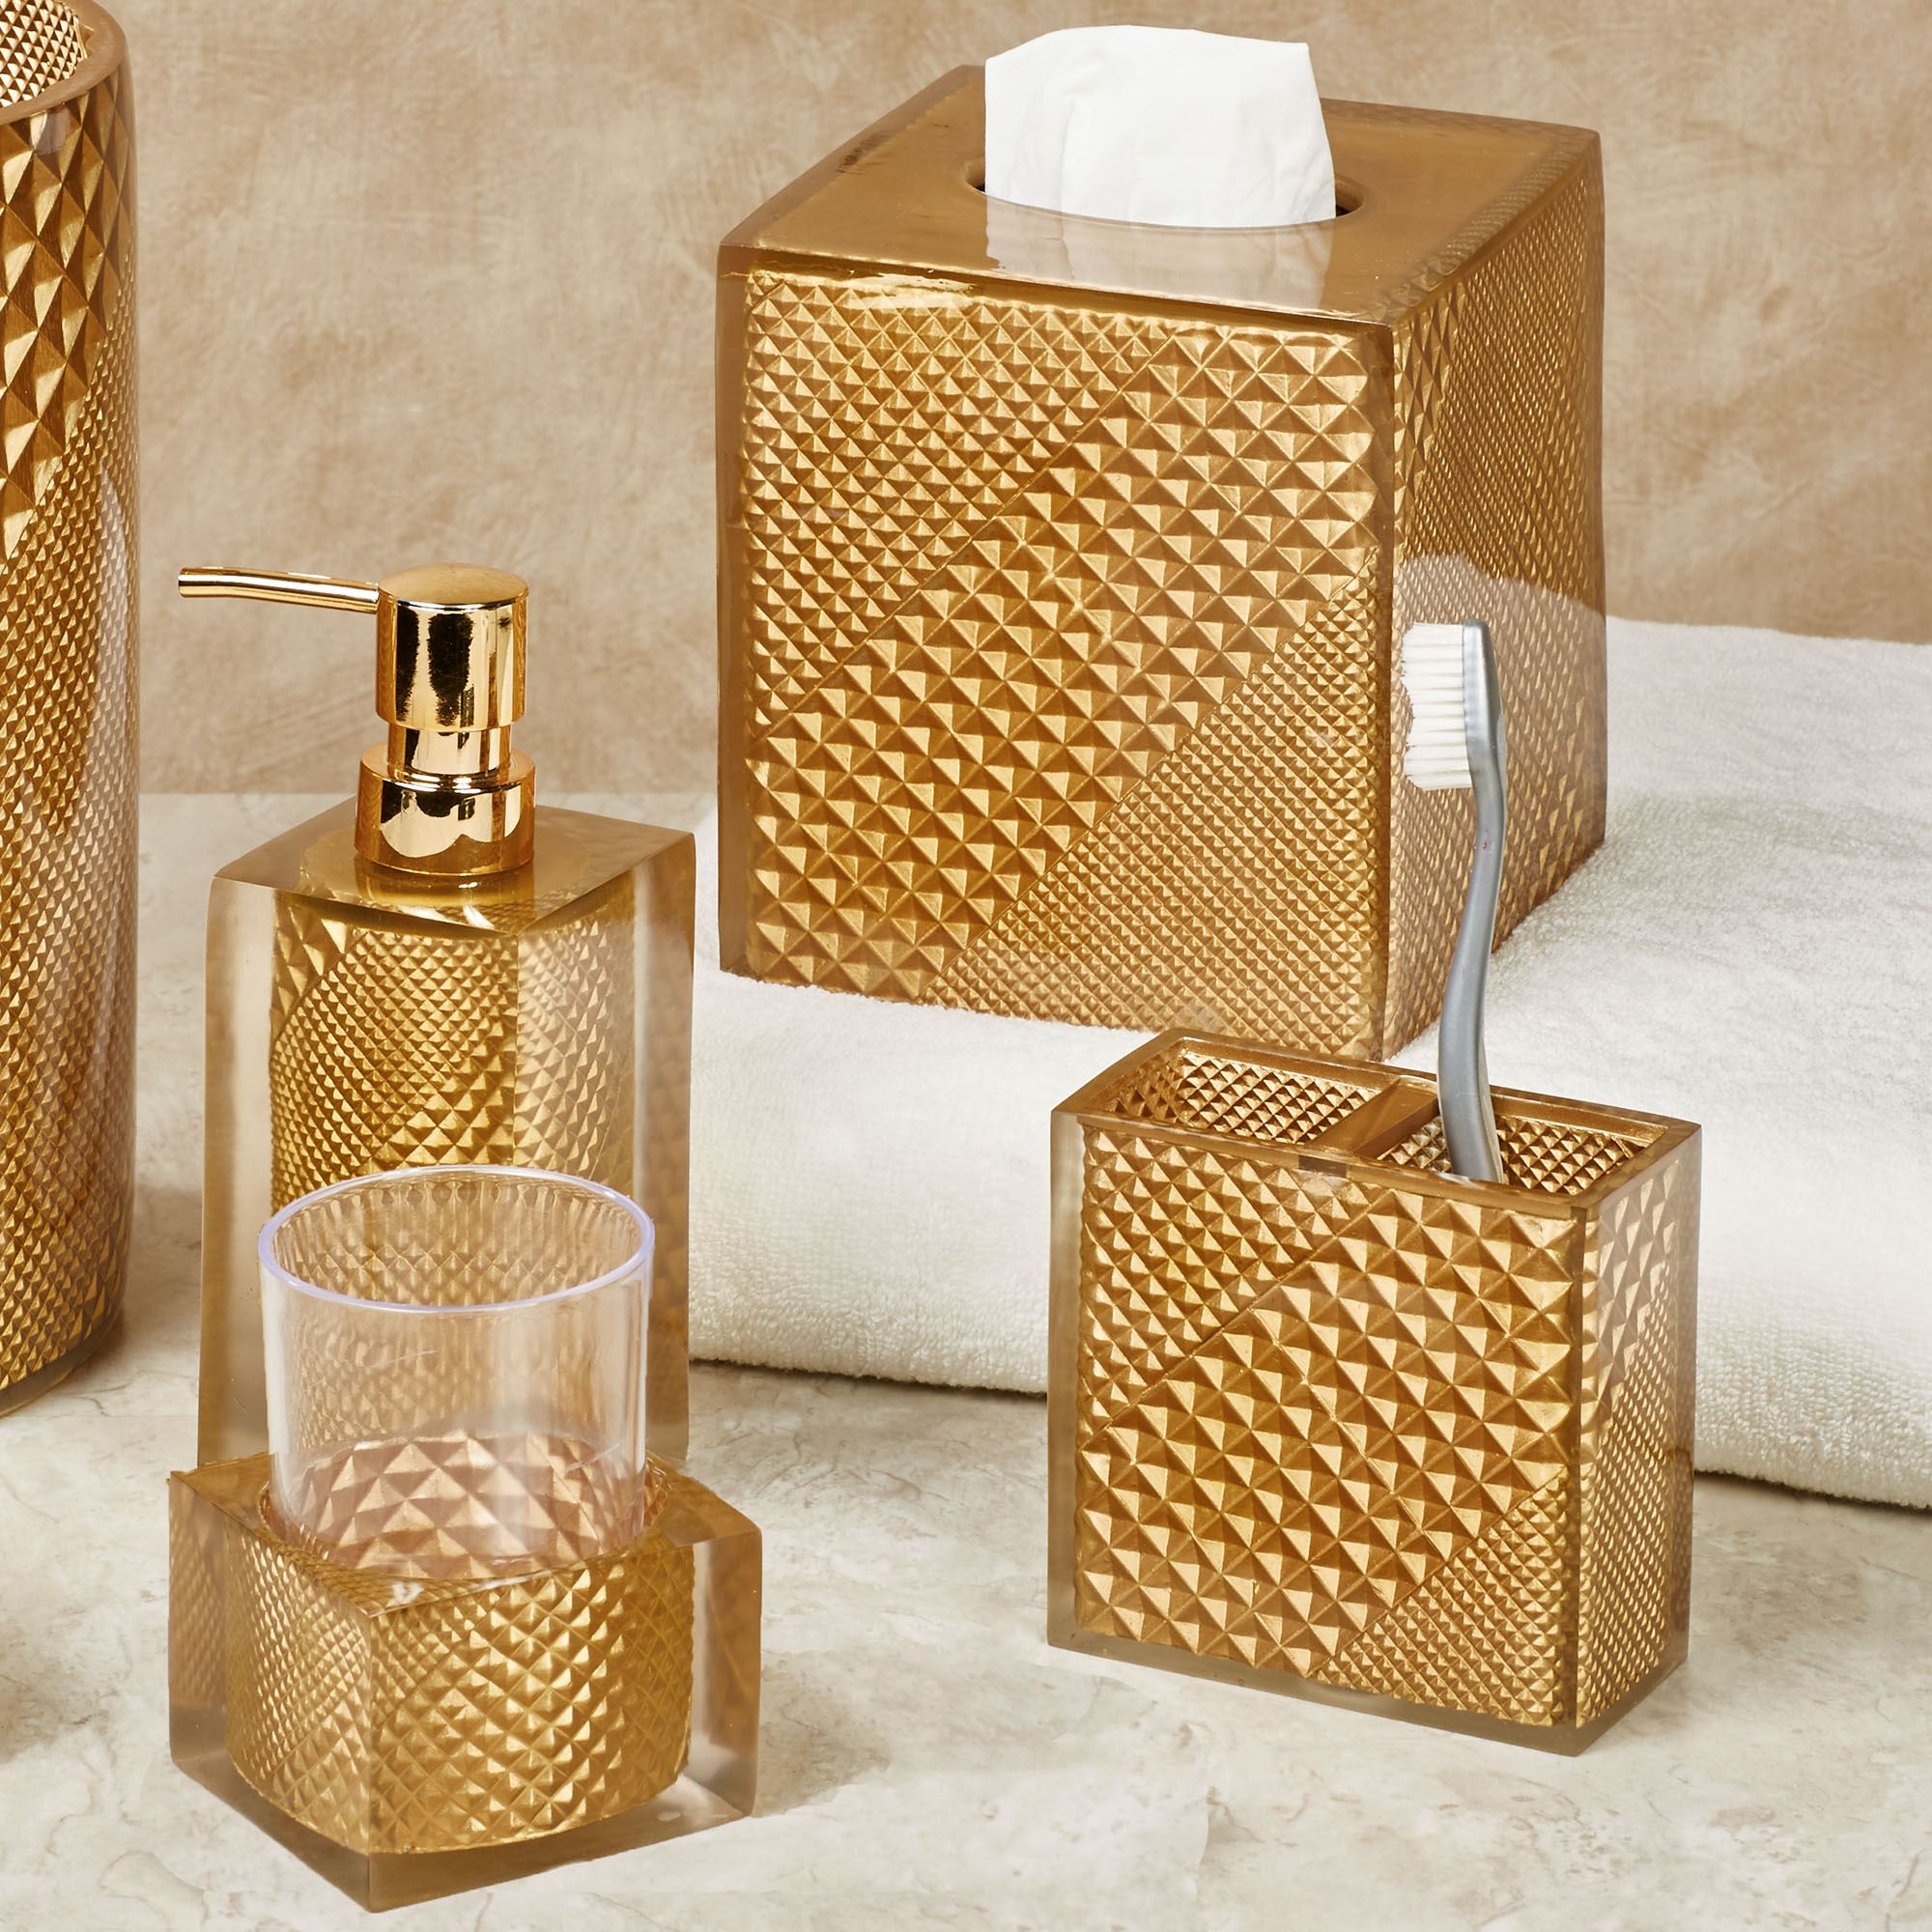 Diamond Elite Gold Bath Accents by Sherry Kline